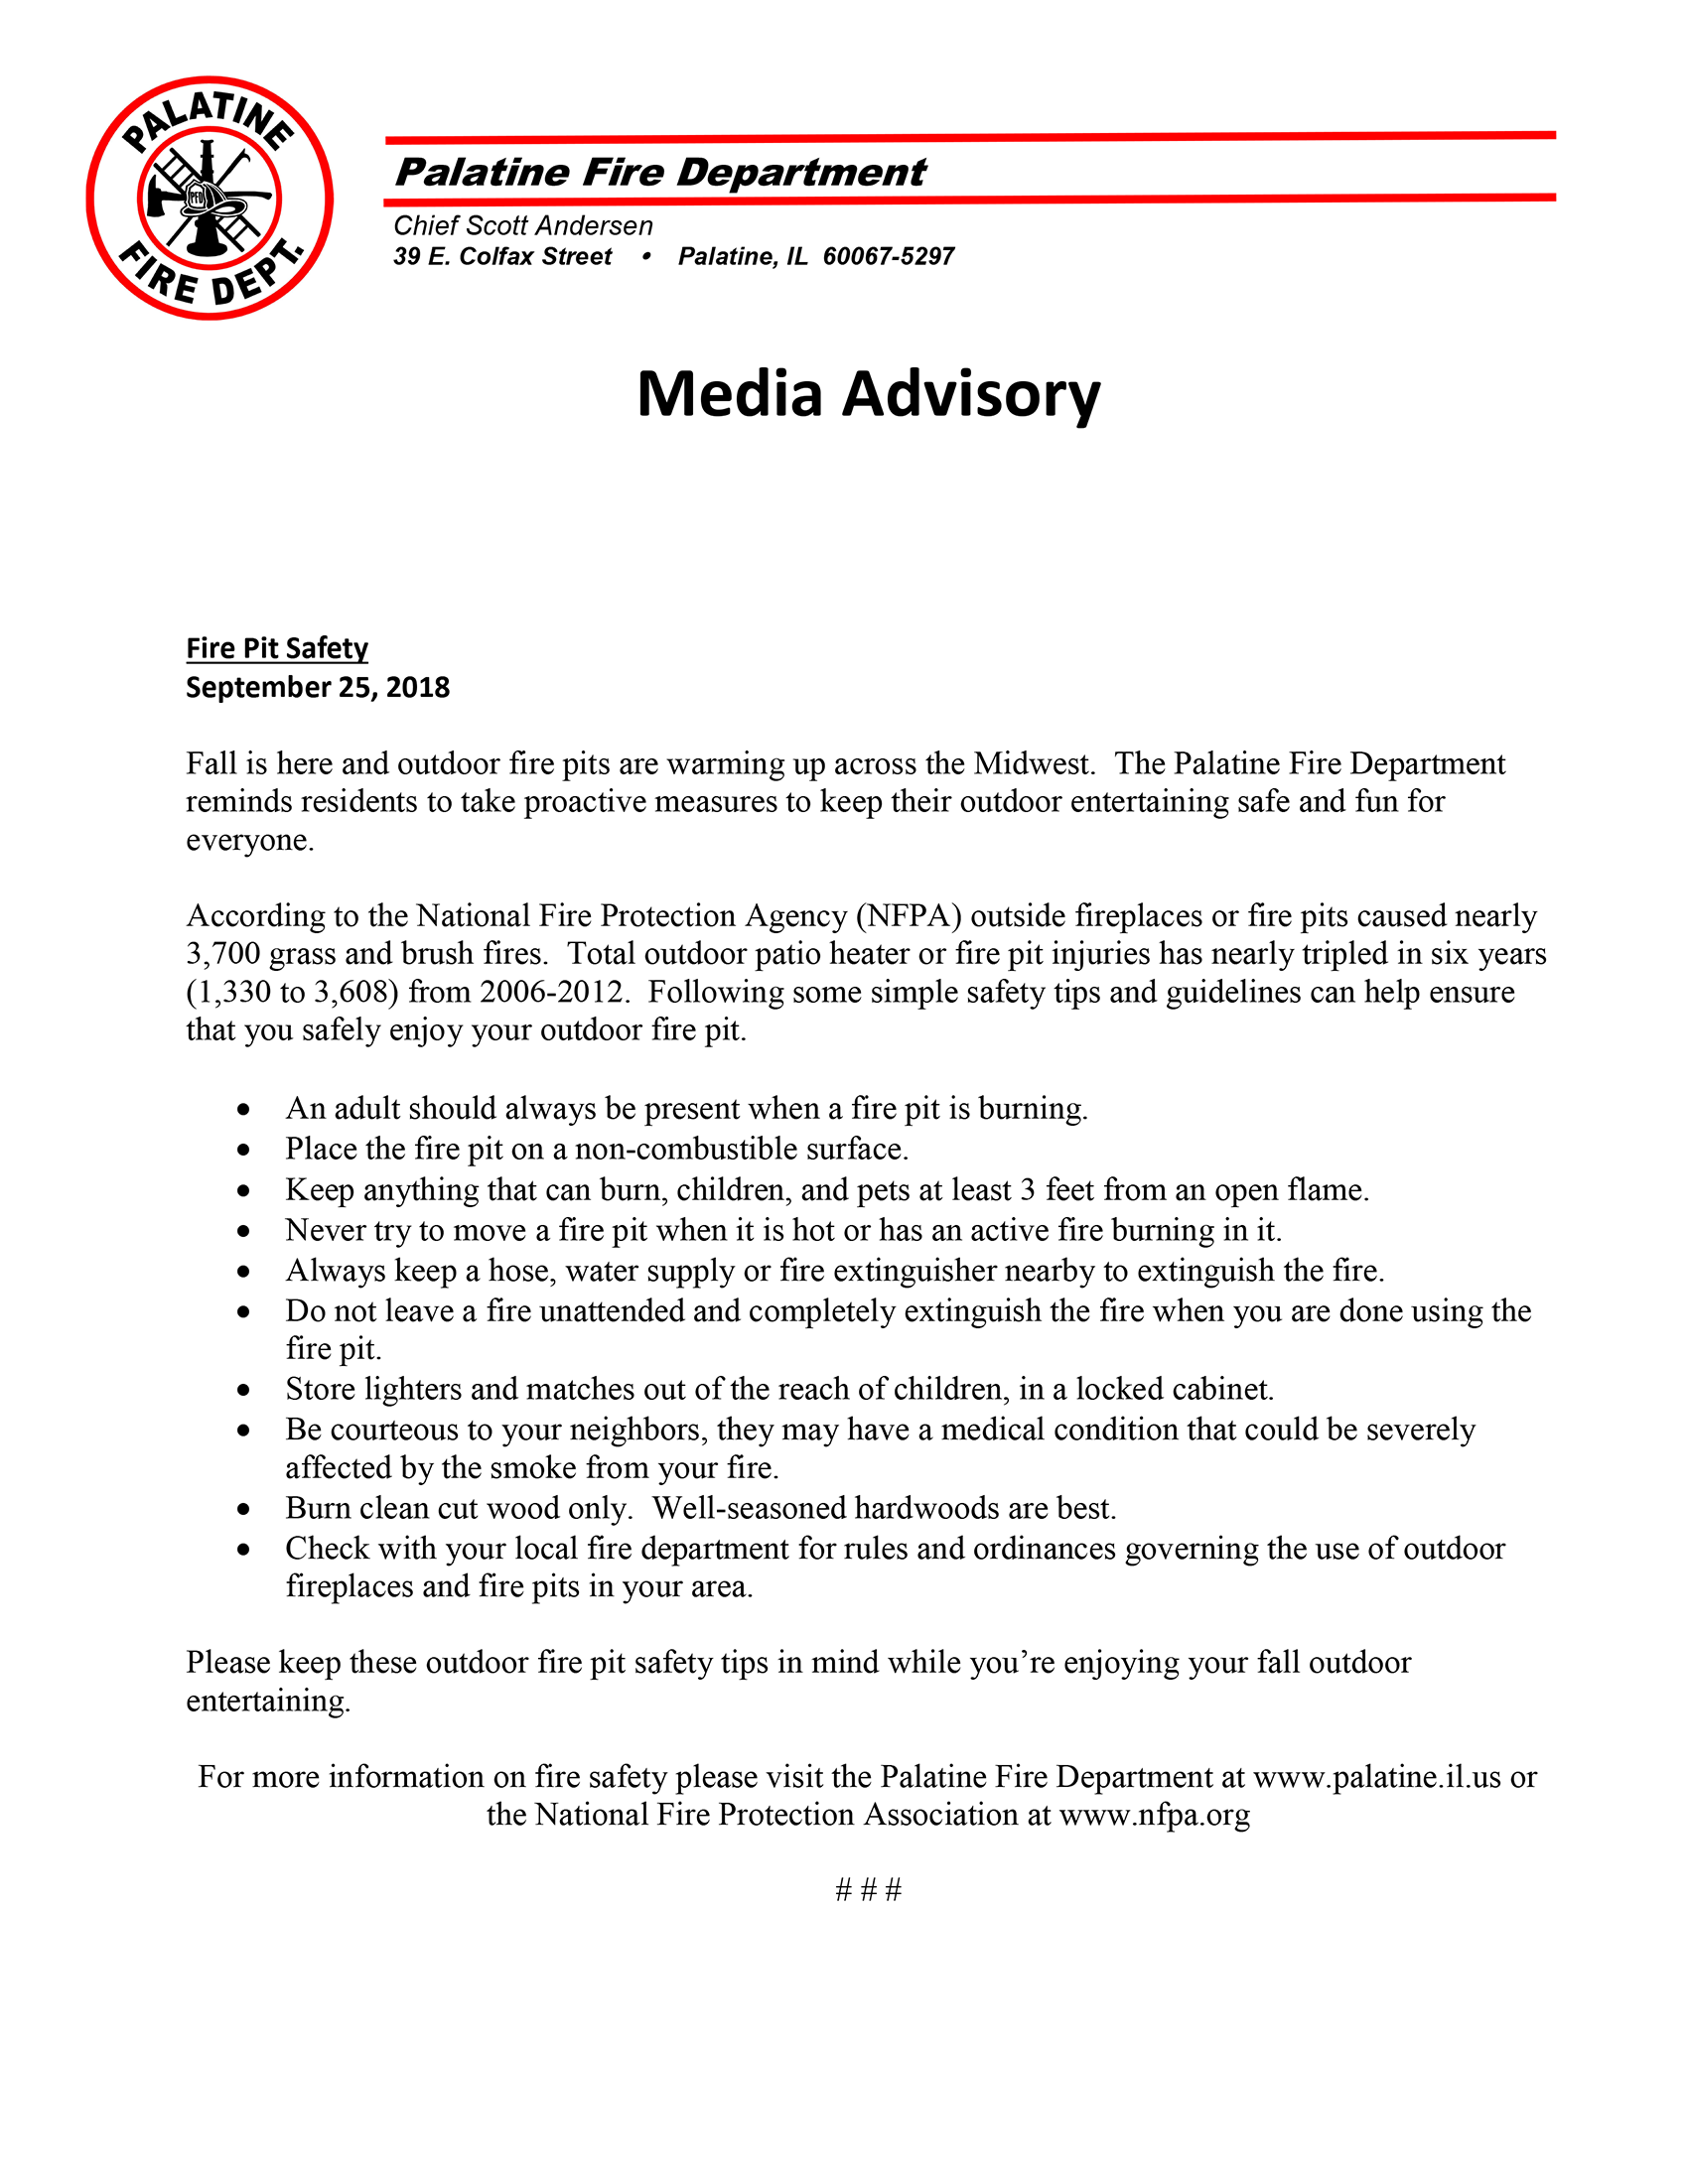 press release urging fire pit safety